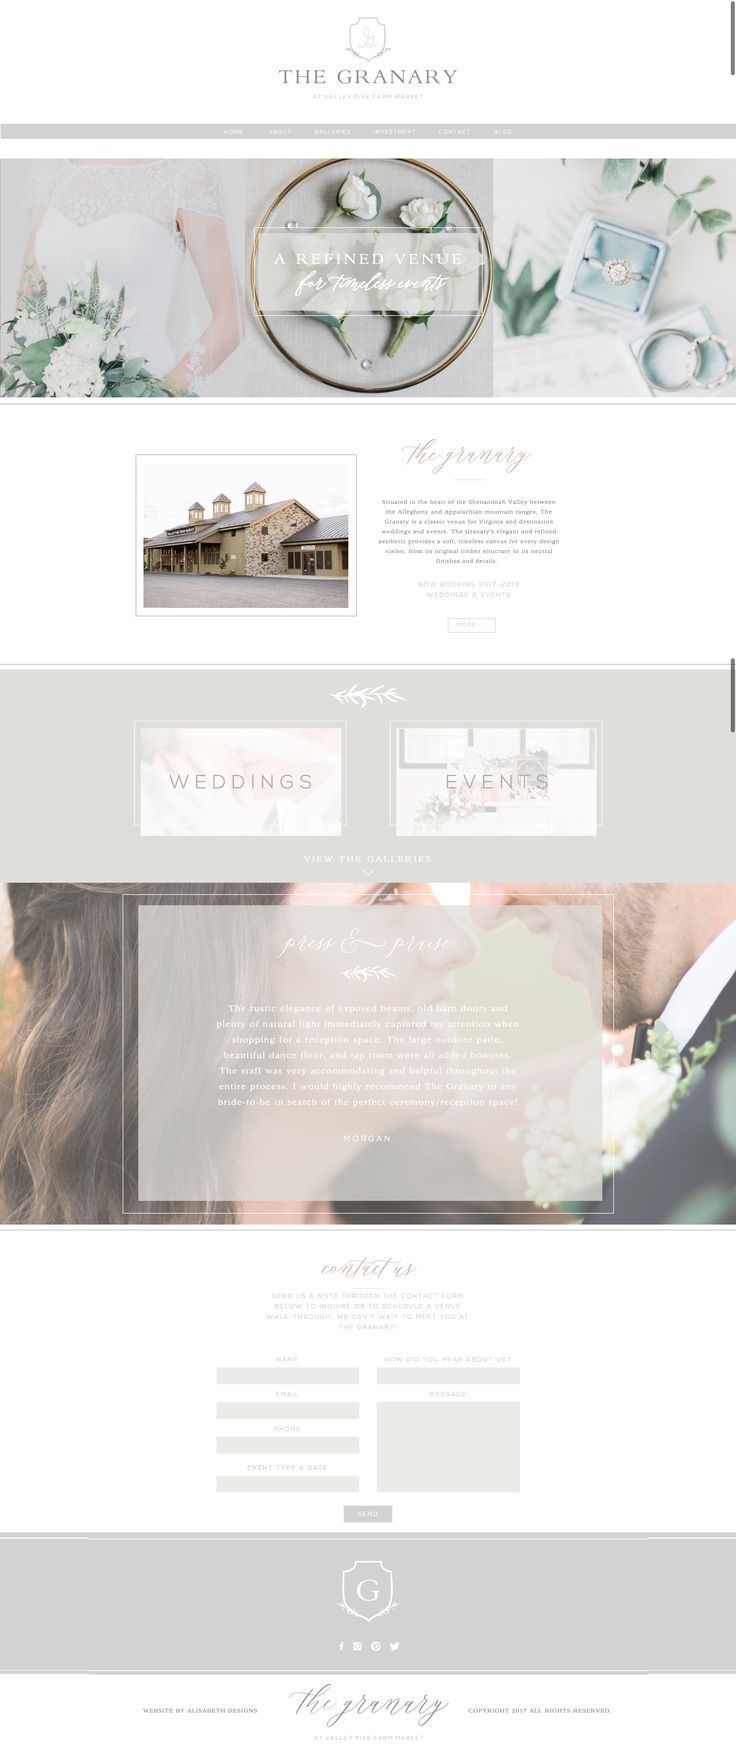 The Granary Website By Alisabeth Designs Wedding Venue Branding Ethereal Feminine Rustic Web Design Logo Feminine Web Design Feminine Website Design